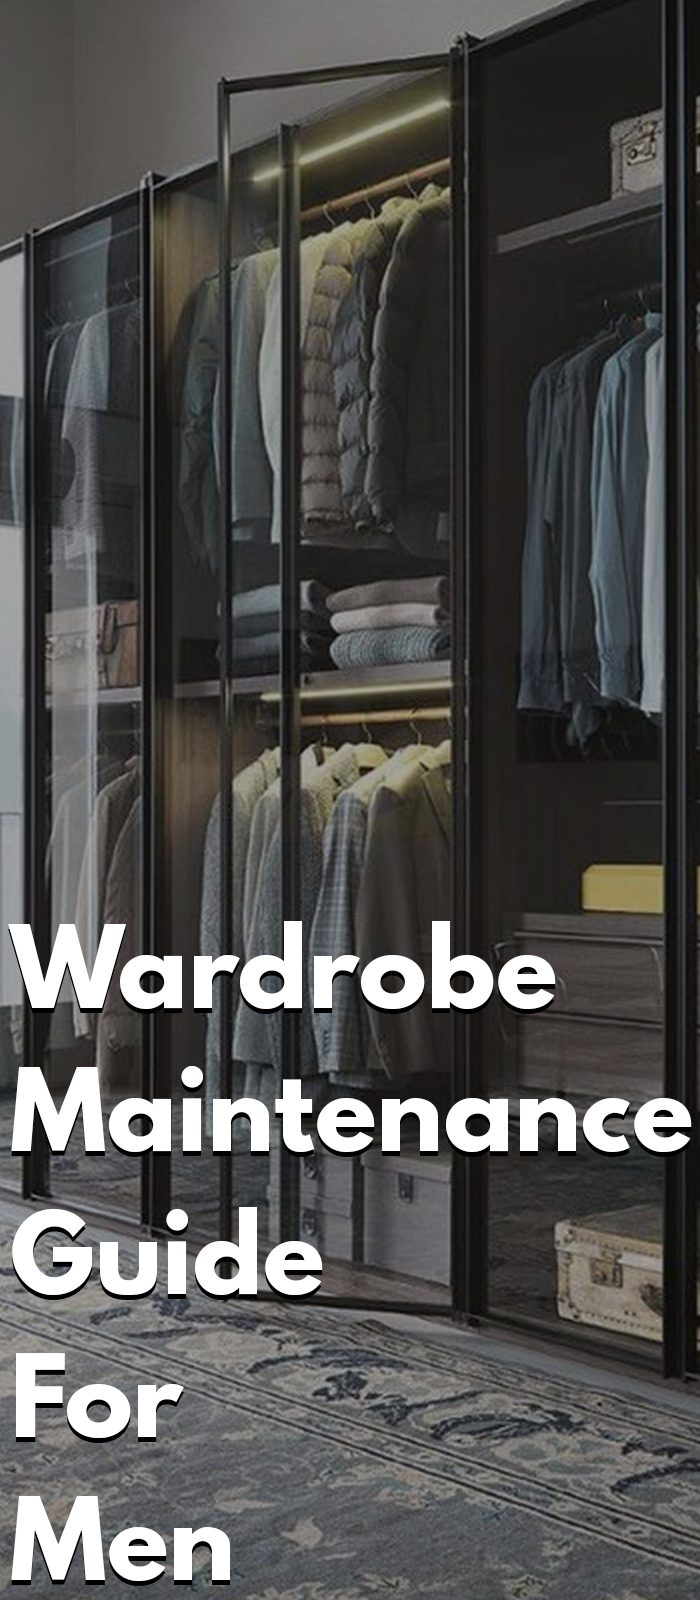 Wardrobe Maintenance Guide For Men's